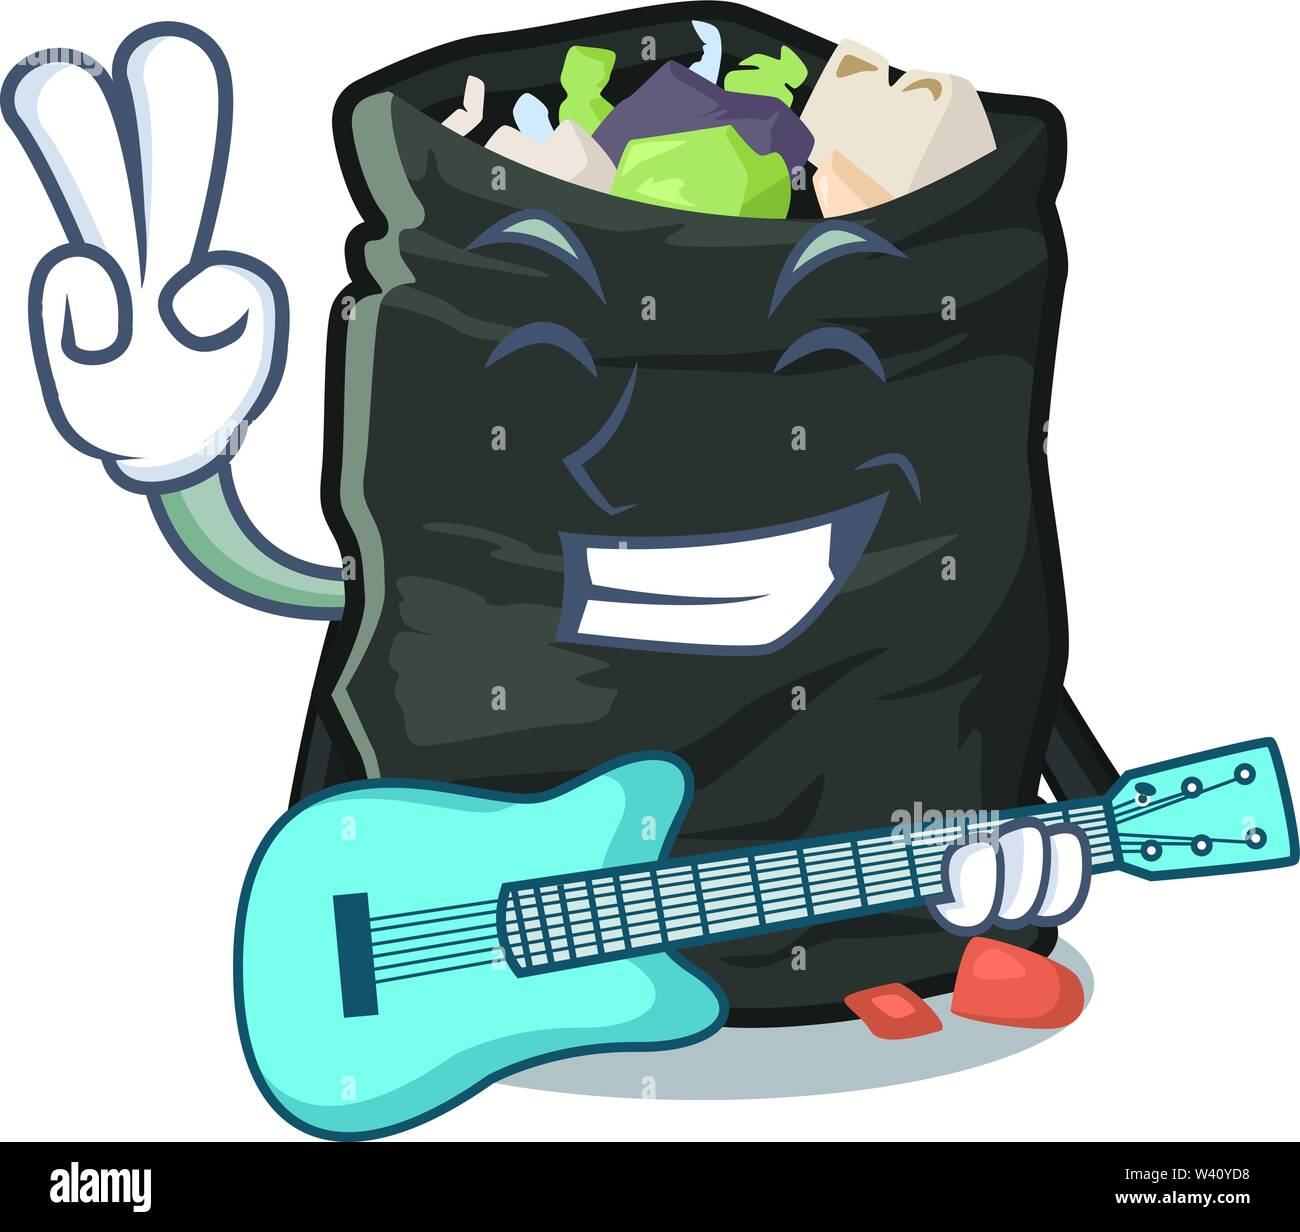 With guitar cartoon garbage bag next to table vector illustration - Stock Image